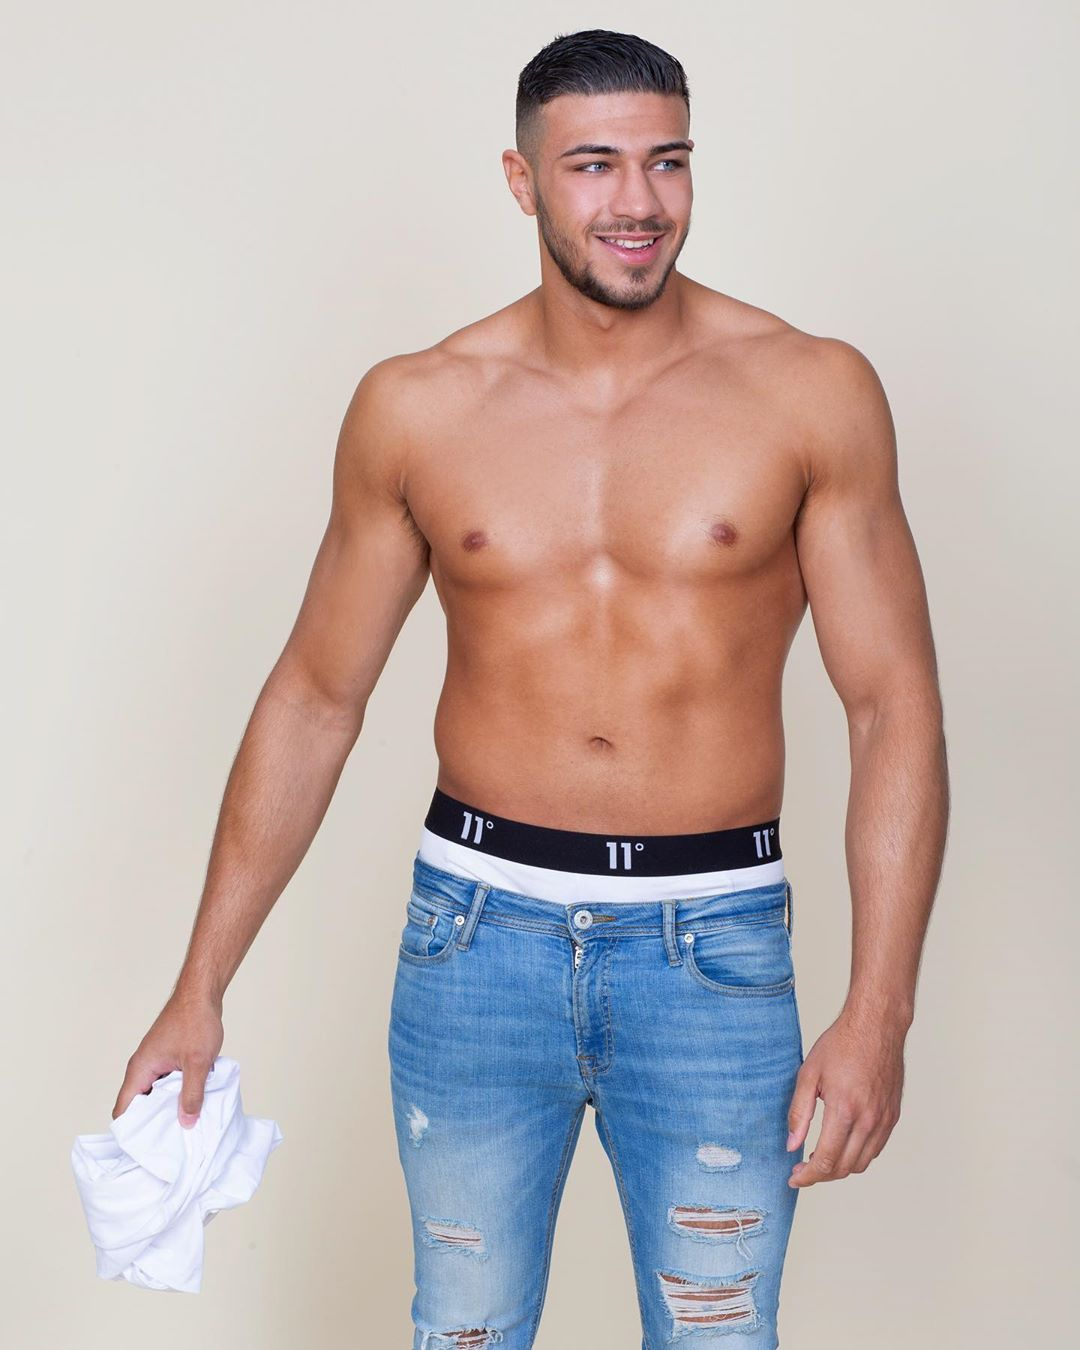 Image may contain: Love Island Instagrams, Love Island, Instagram, followers, ranking, 2019, Tommy, Man, Diaper, Denim, Jeans, Person, Human, Pants, Clothing, Apparel